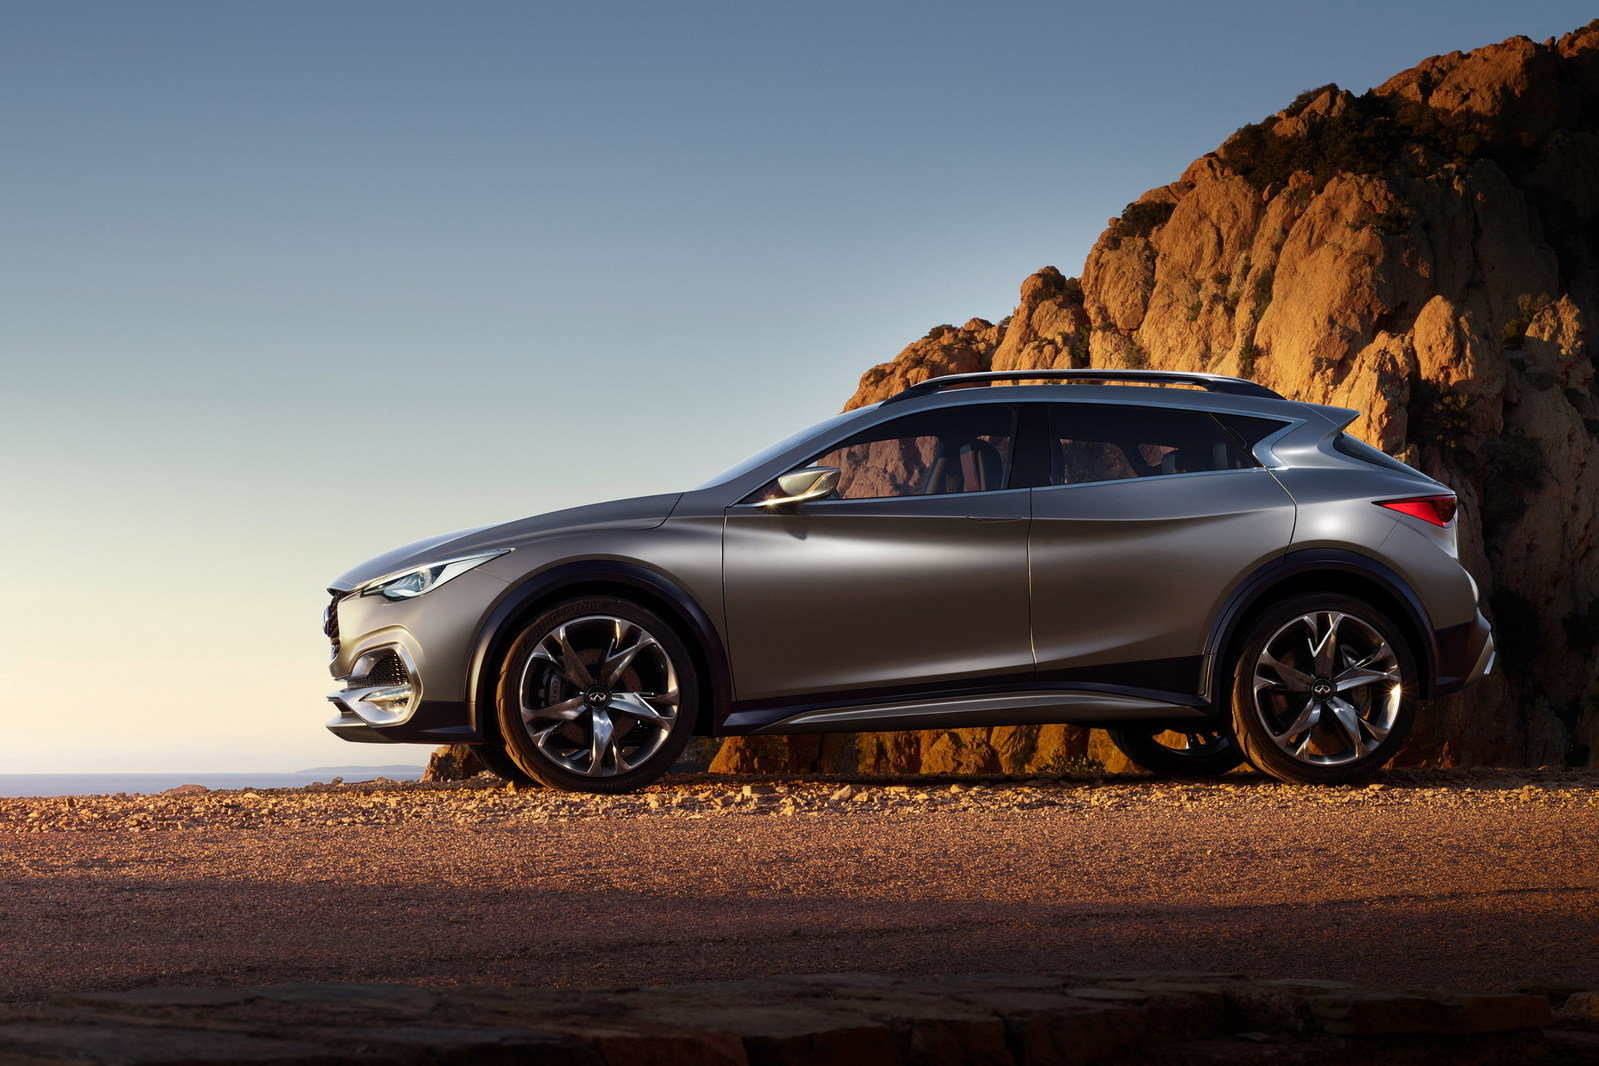 2015 Infiniti Qx30 Concept Picture 619411 Car Review Make Your Own Beautiful  HD Wallpapers, Images Over 1000+ [ralydesign.ml]